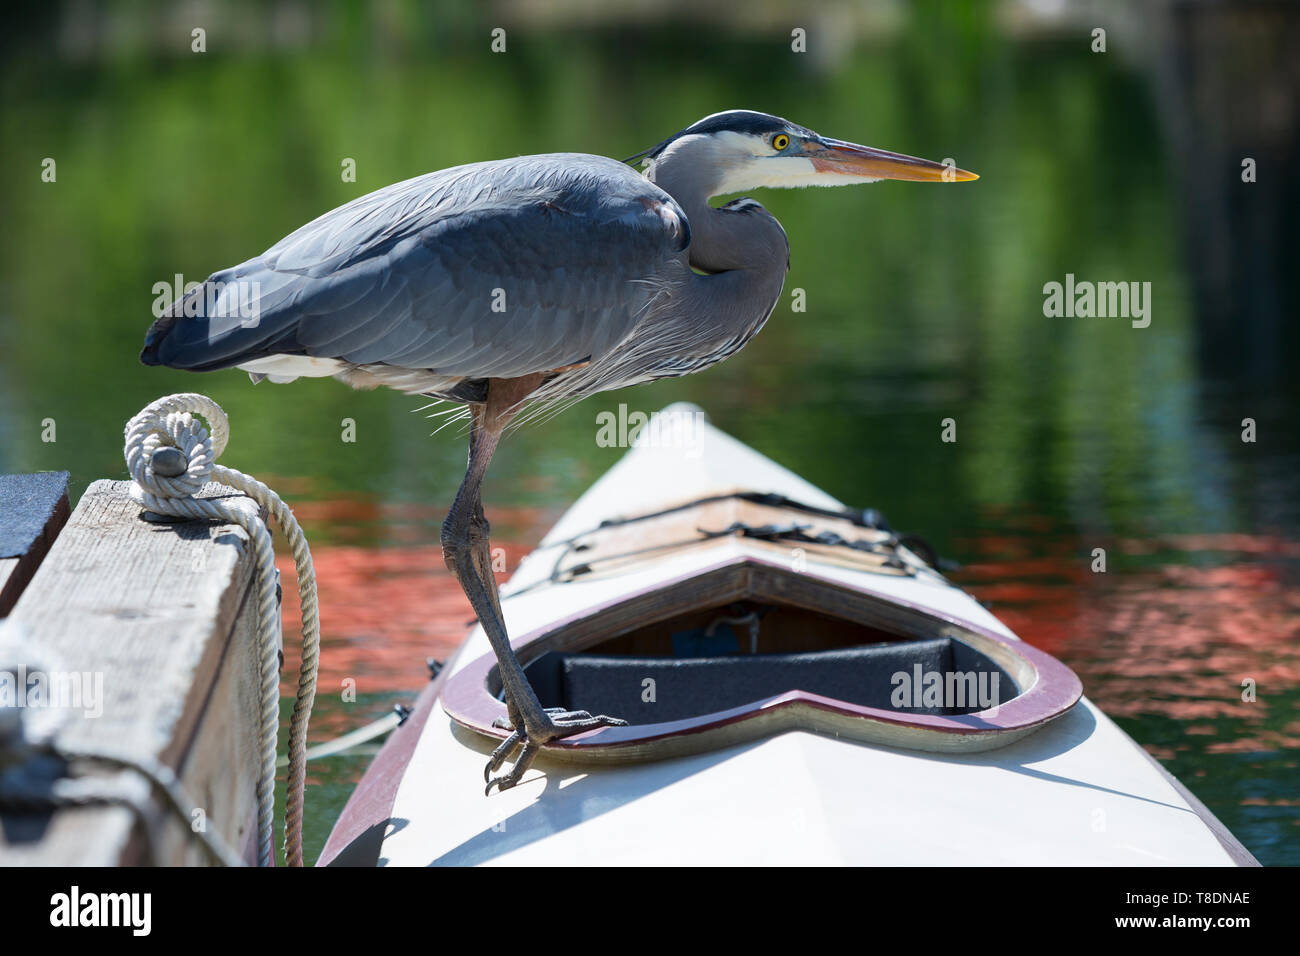 Seattle, Washington: A Great Blue Heron perches on a kayak at the Center for Wooden Boats in South Lake Union. - Stock Image